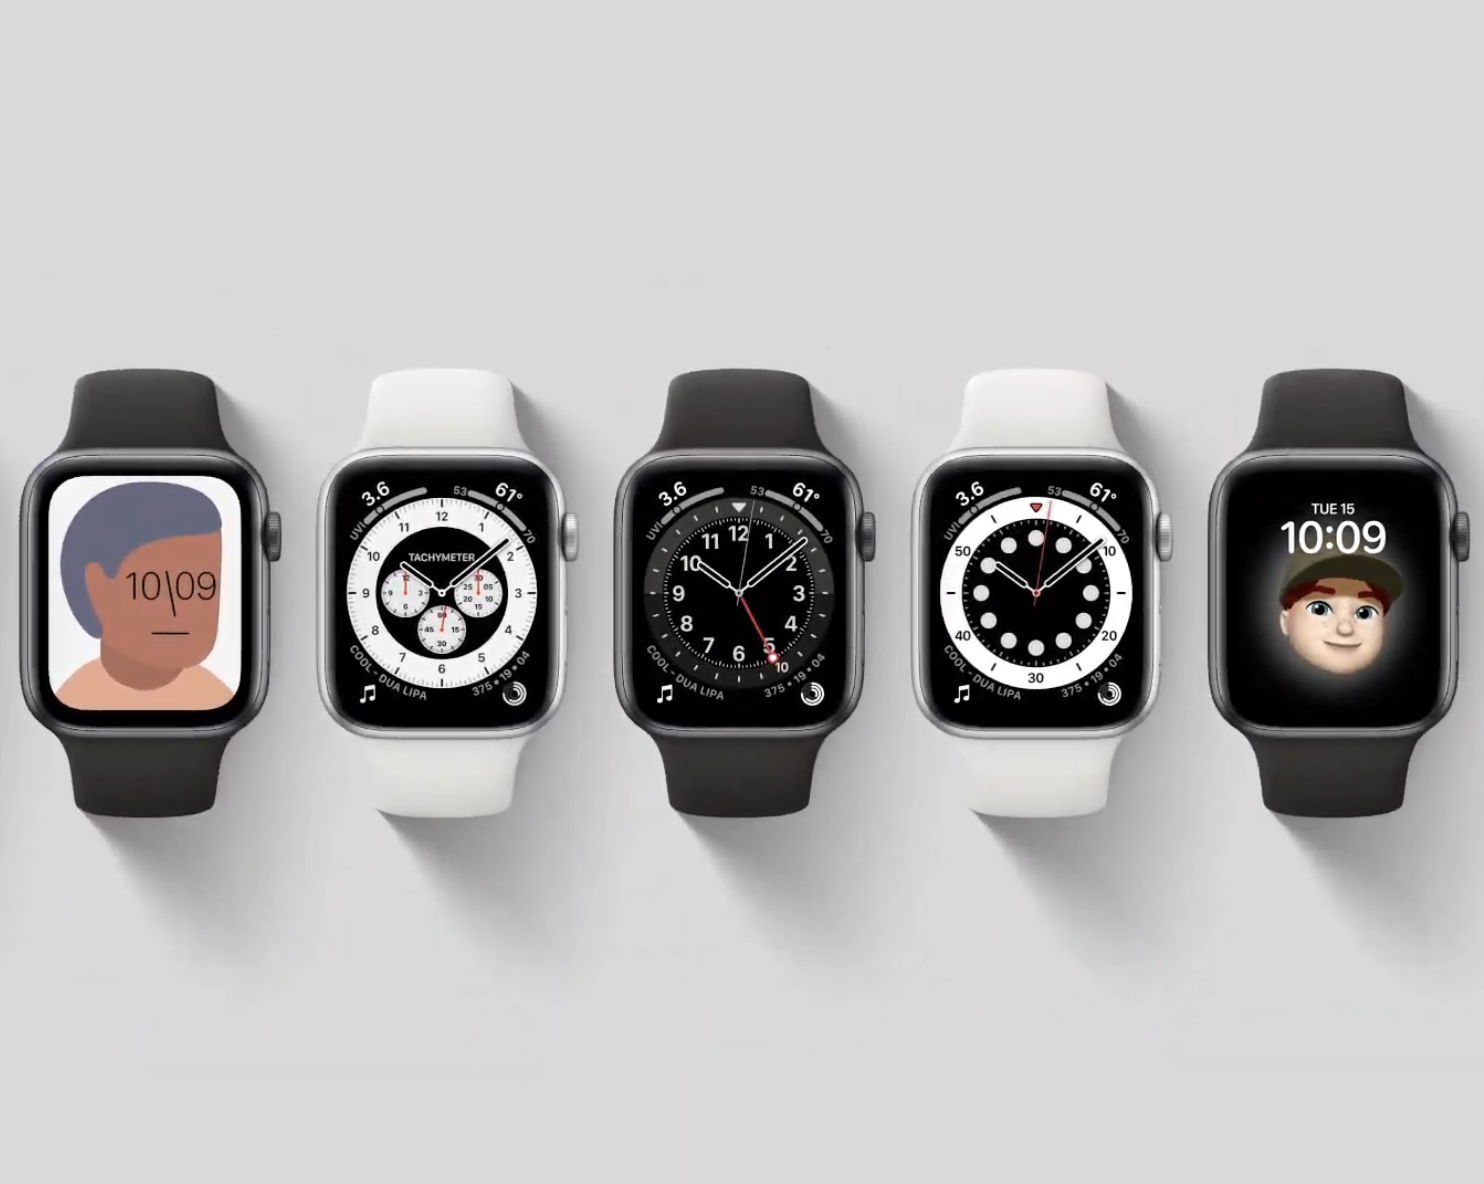 Best Apple Watch Yet? Everything You Need to Know About the Series 6